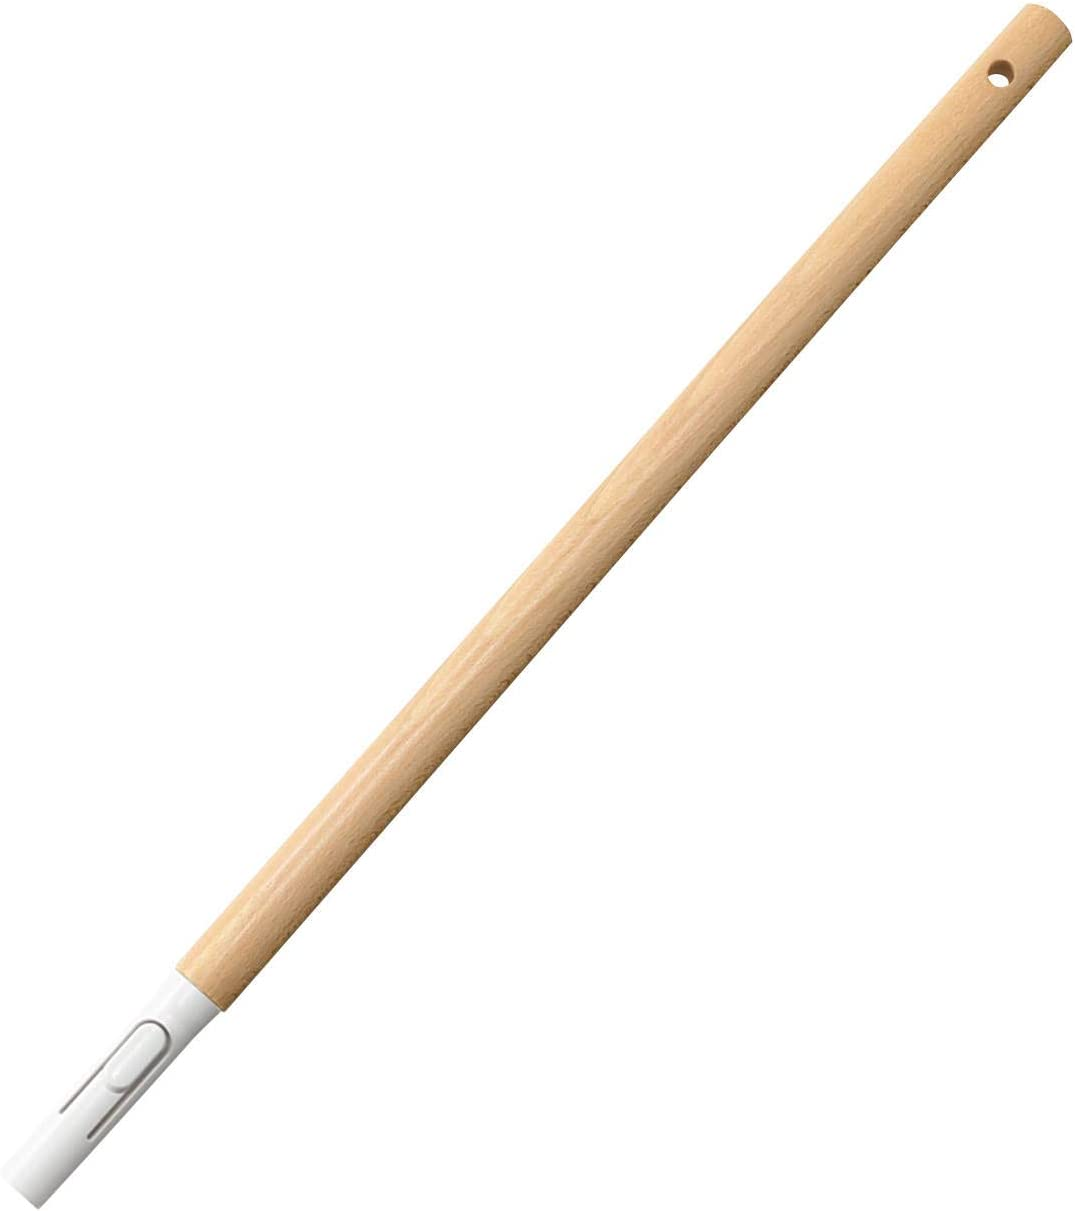 Limited price sale Muji Cleaning System- Max 53% OFF Pole Short Wooden